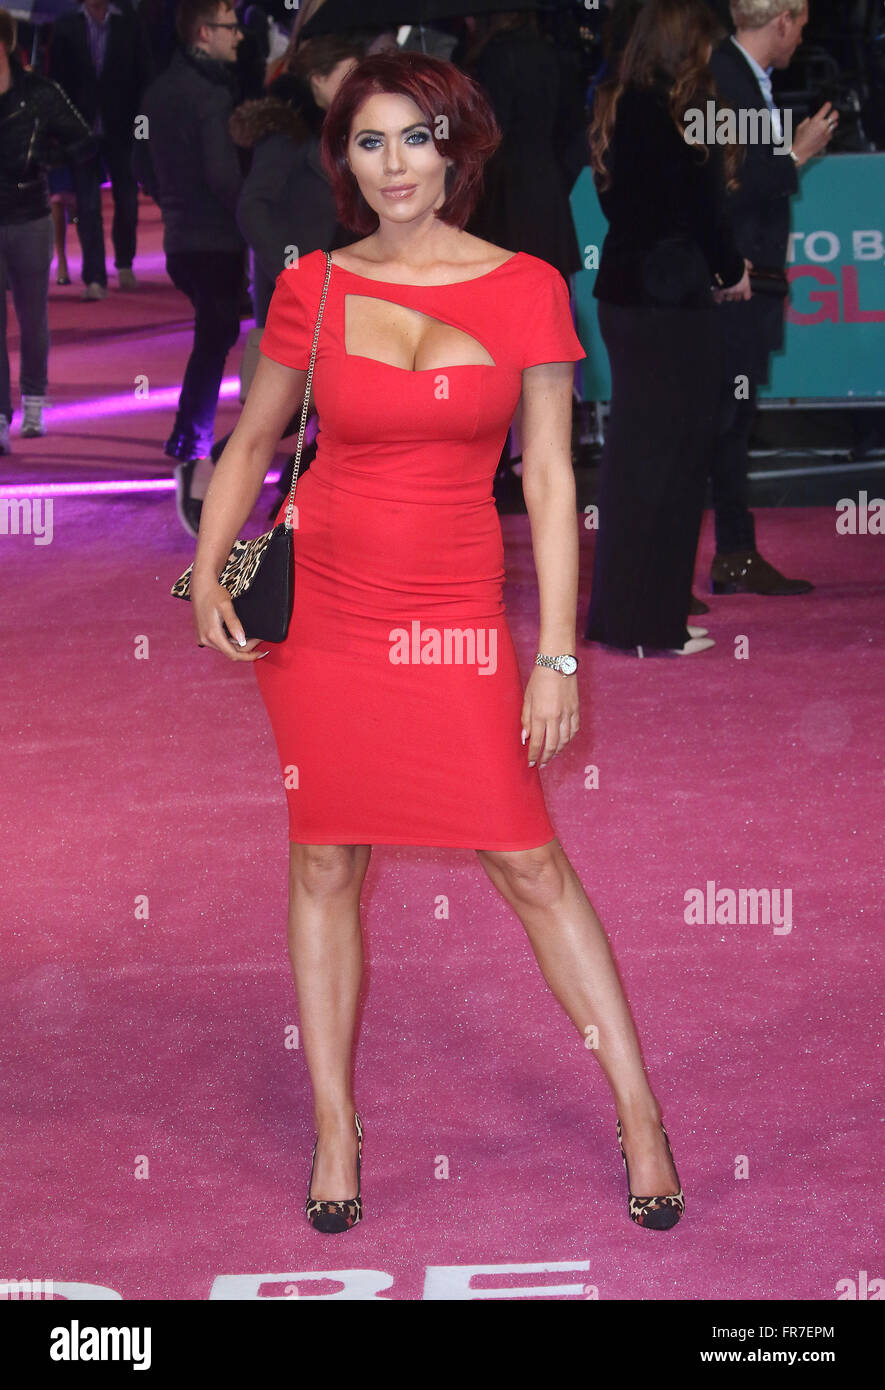 February 9, 2016  Amy Childs Attending 'how To Be Single' European Premiere